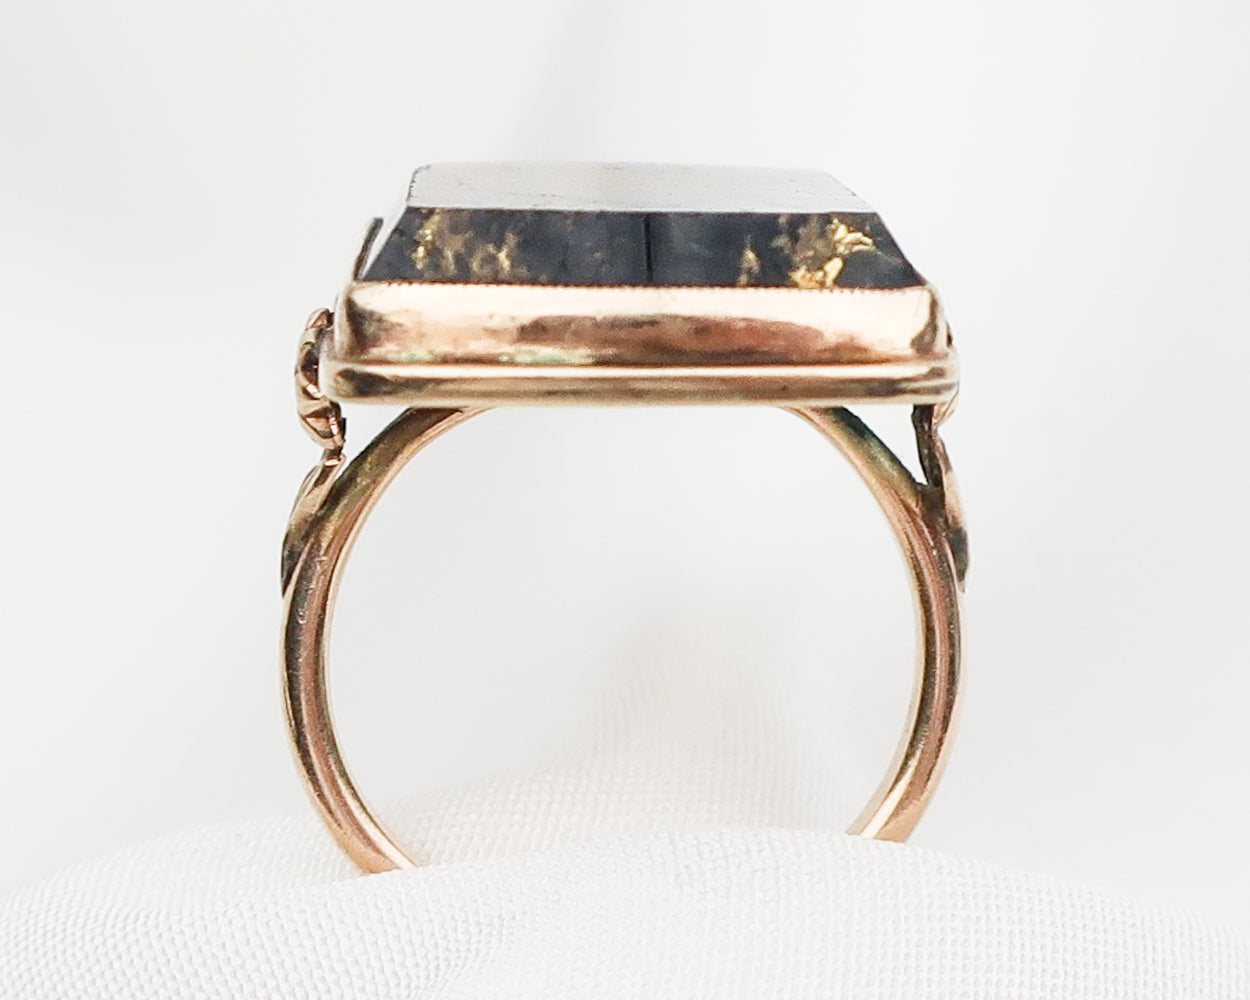 Victorian Gold-Bearing Quartz Ring